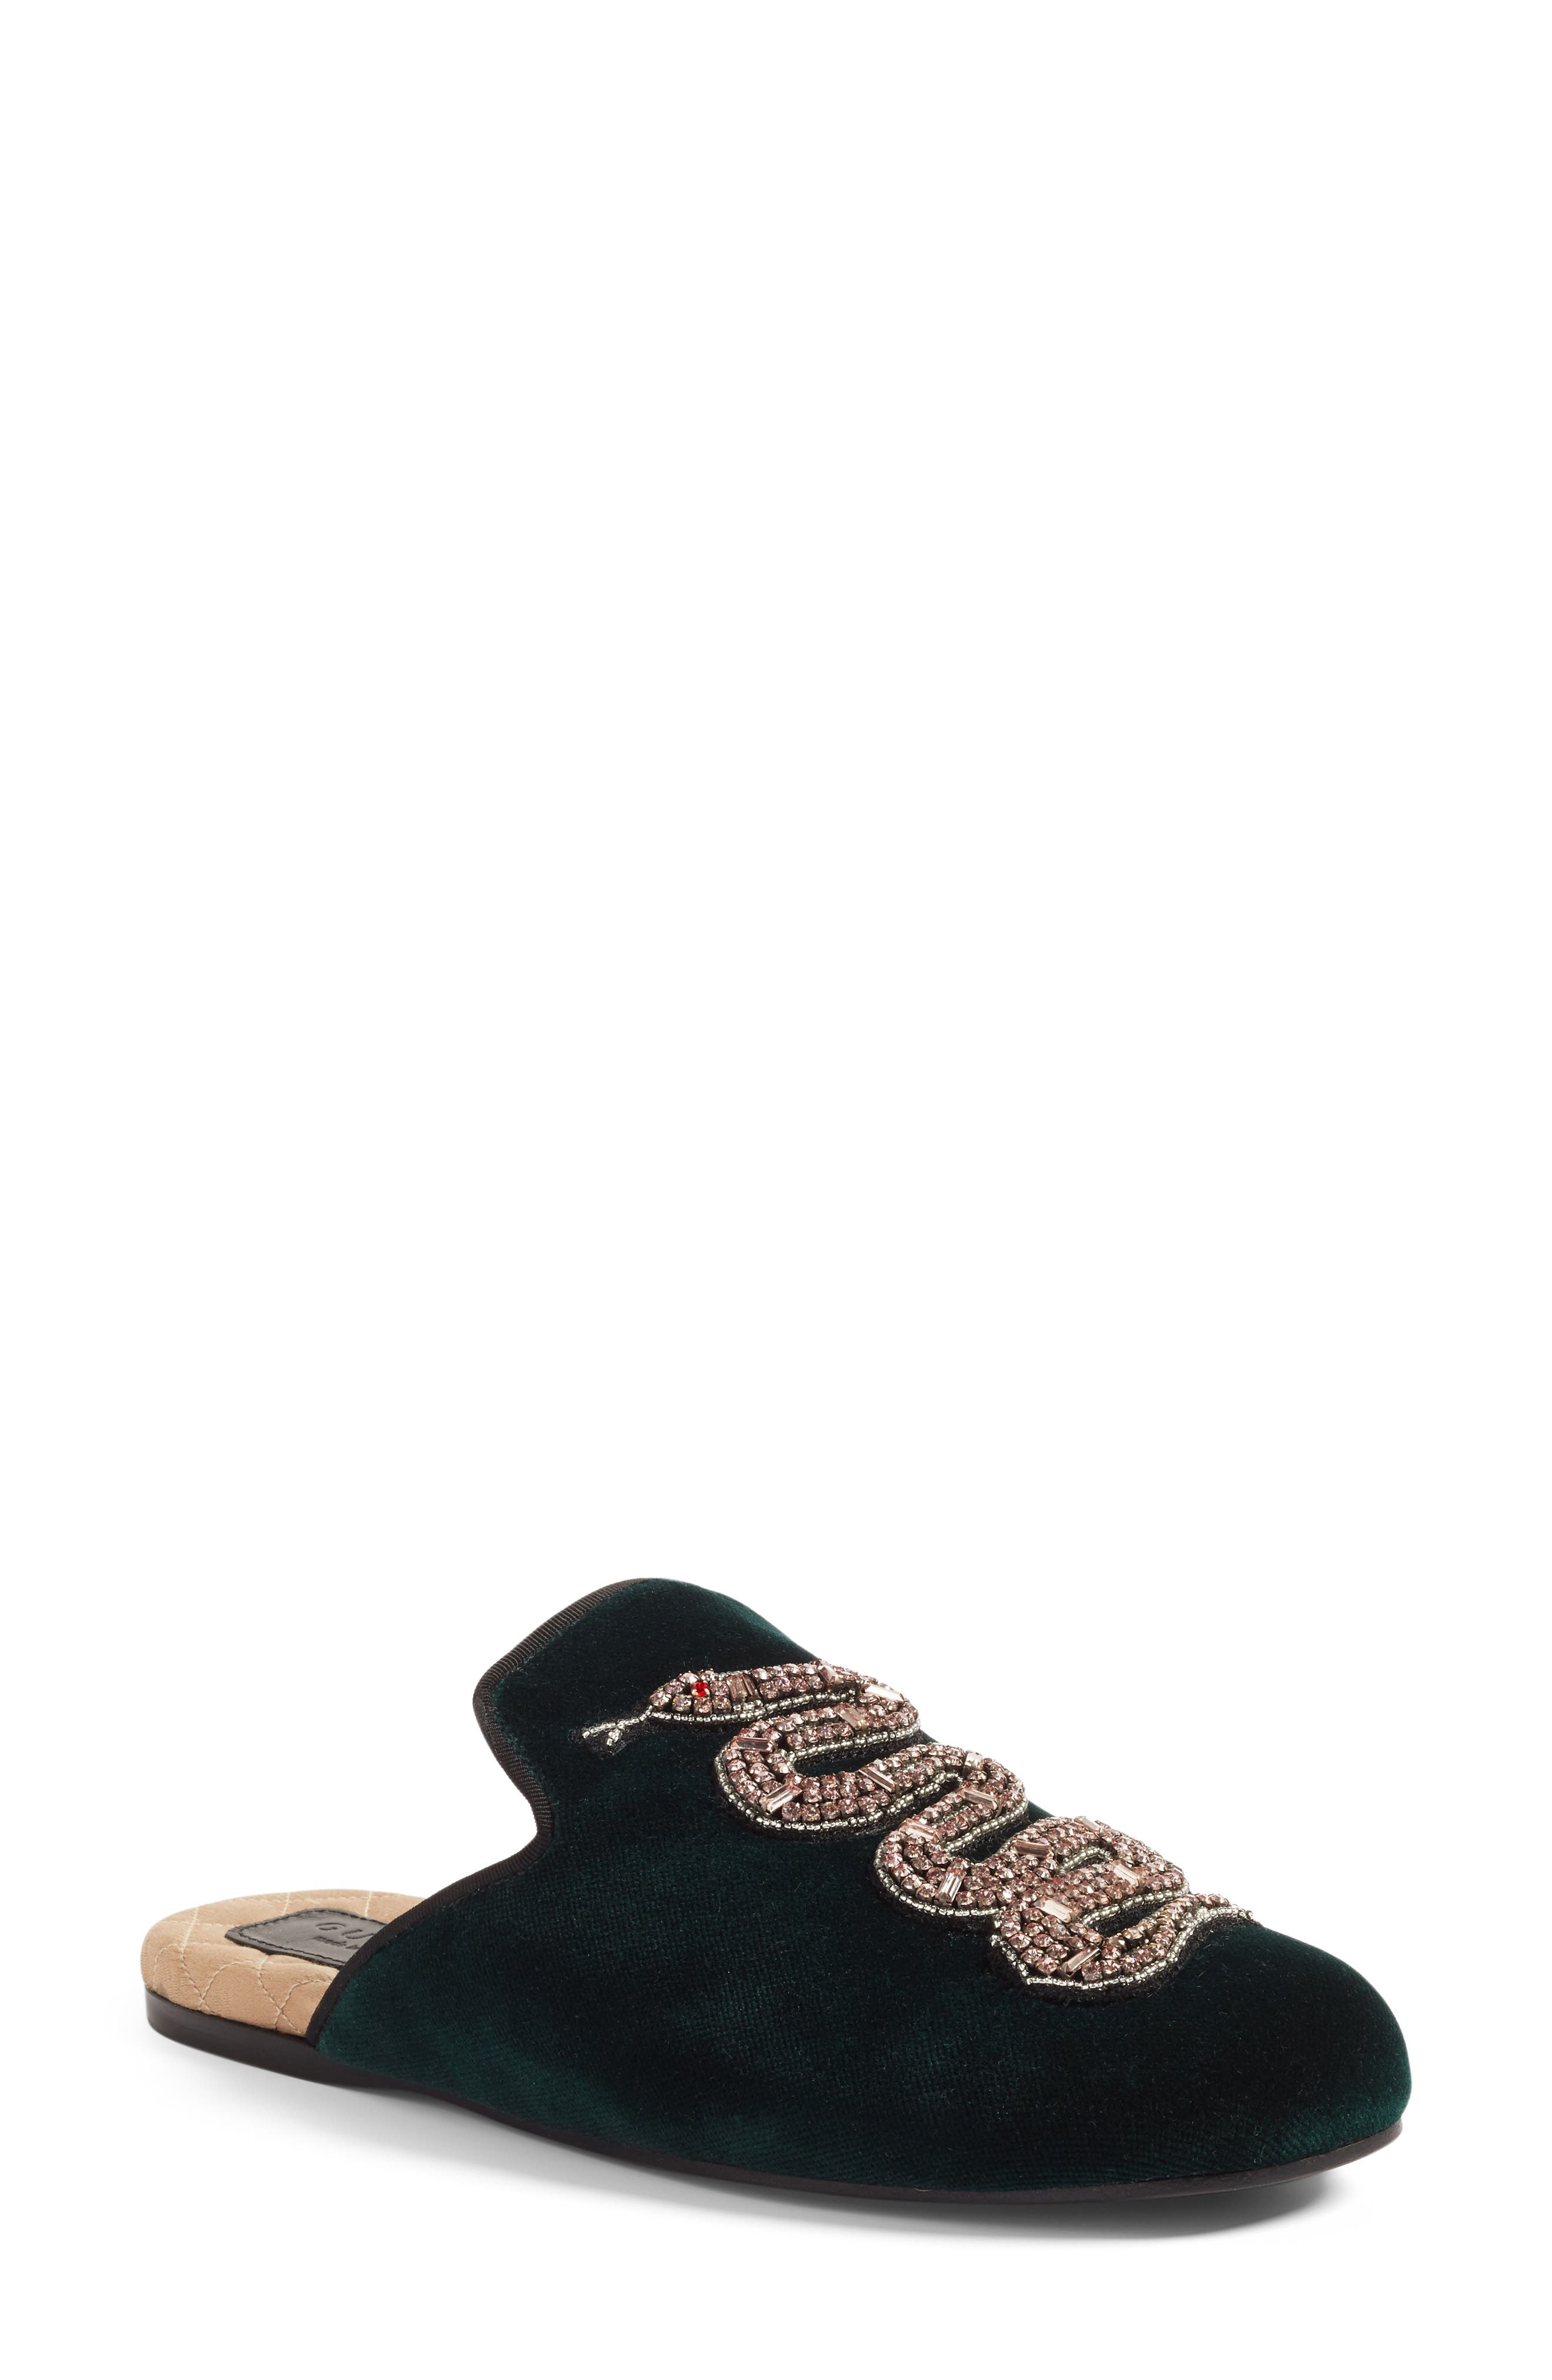 Lawrence Snake Mule,                         Main,                         color, 358